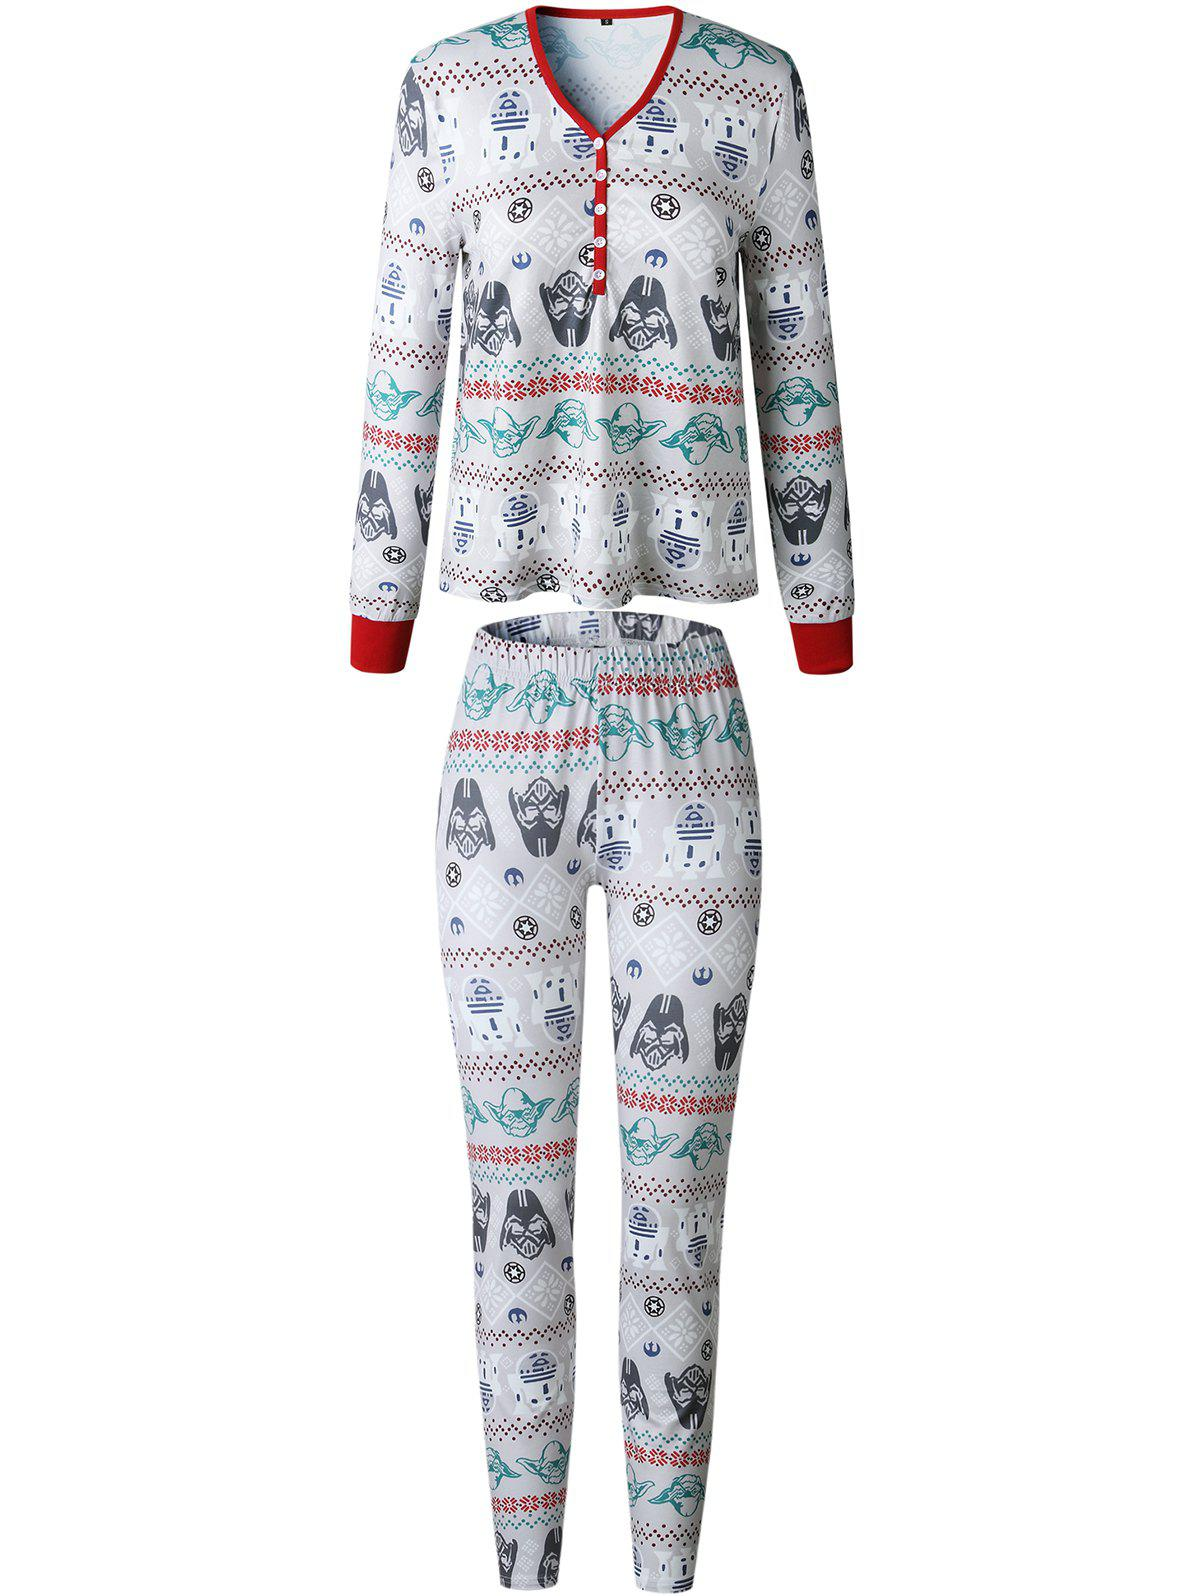 Chic Christmas  Family Pajama Long Sleeves Casual  Print  Sets Parent-Child Home Suit Pyjamas